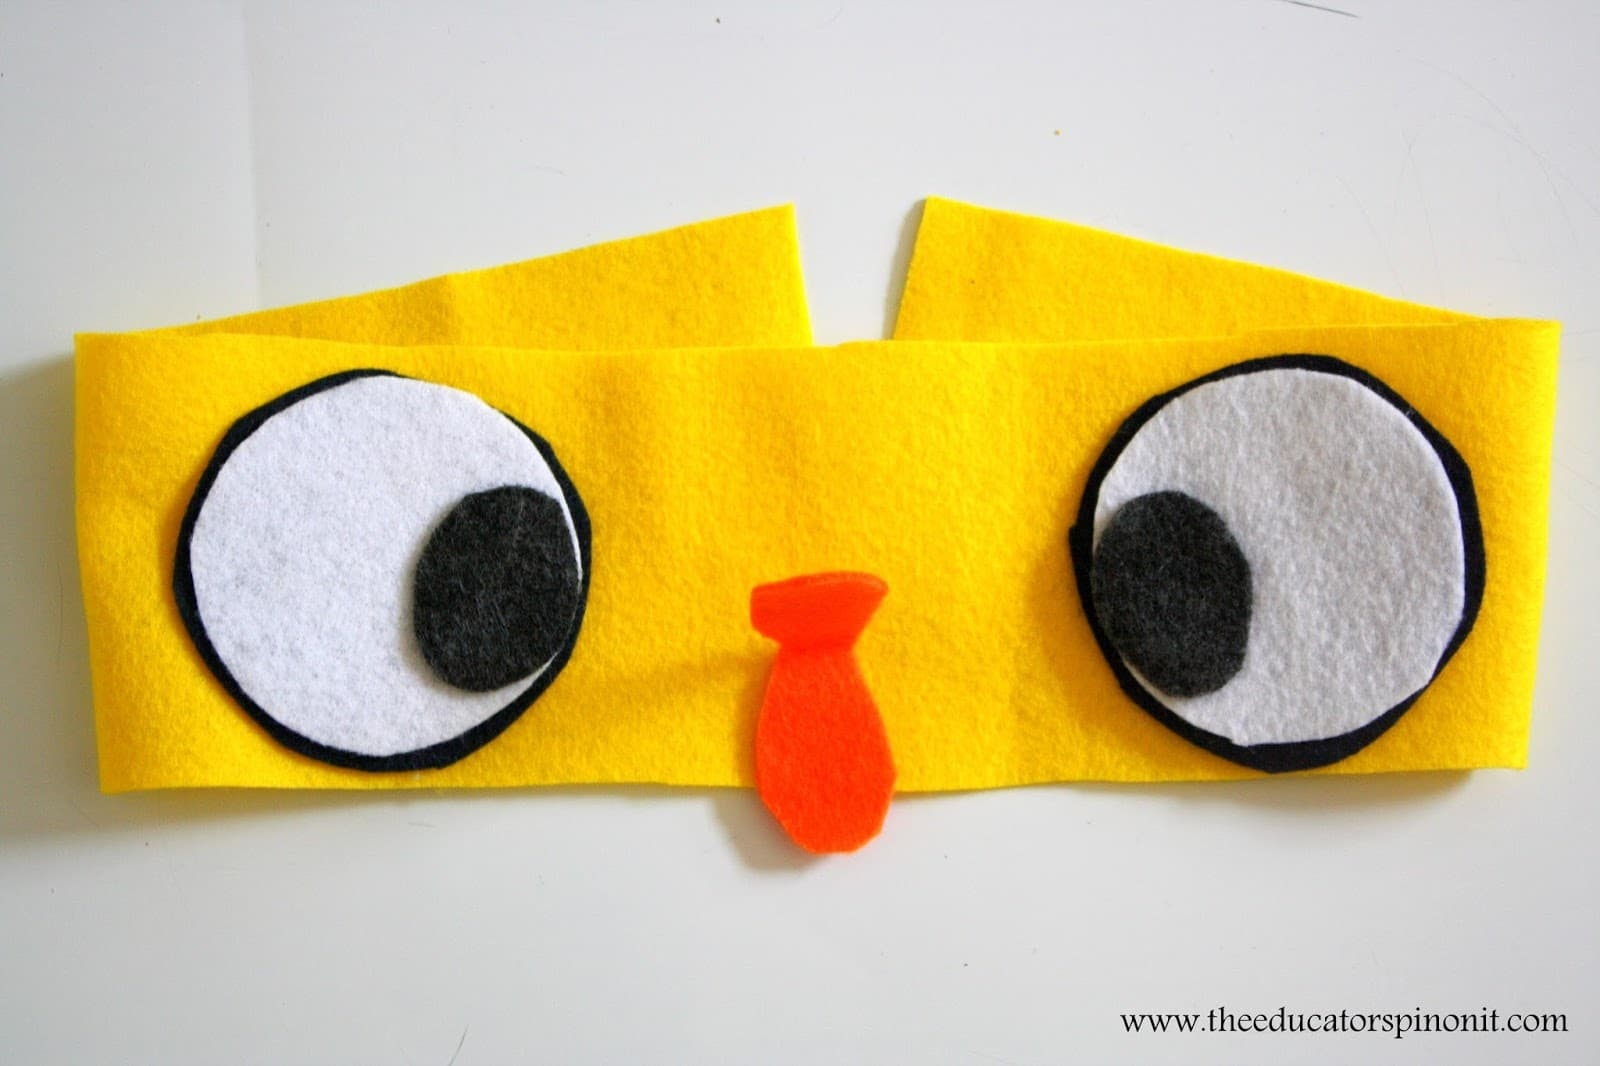 Set out the pieces of the Duckling headband before sewing.